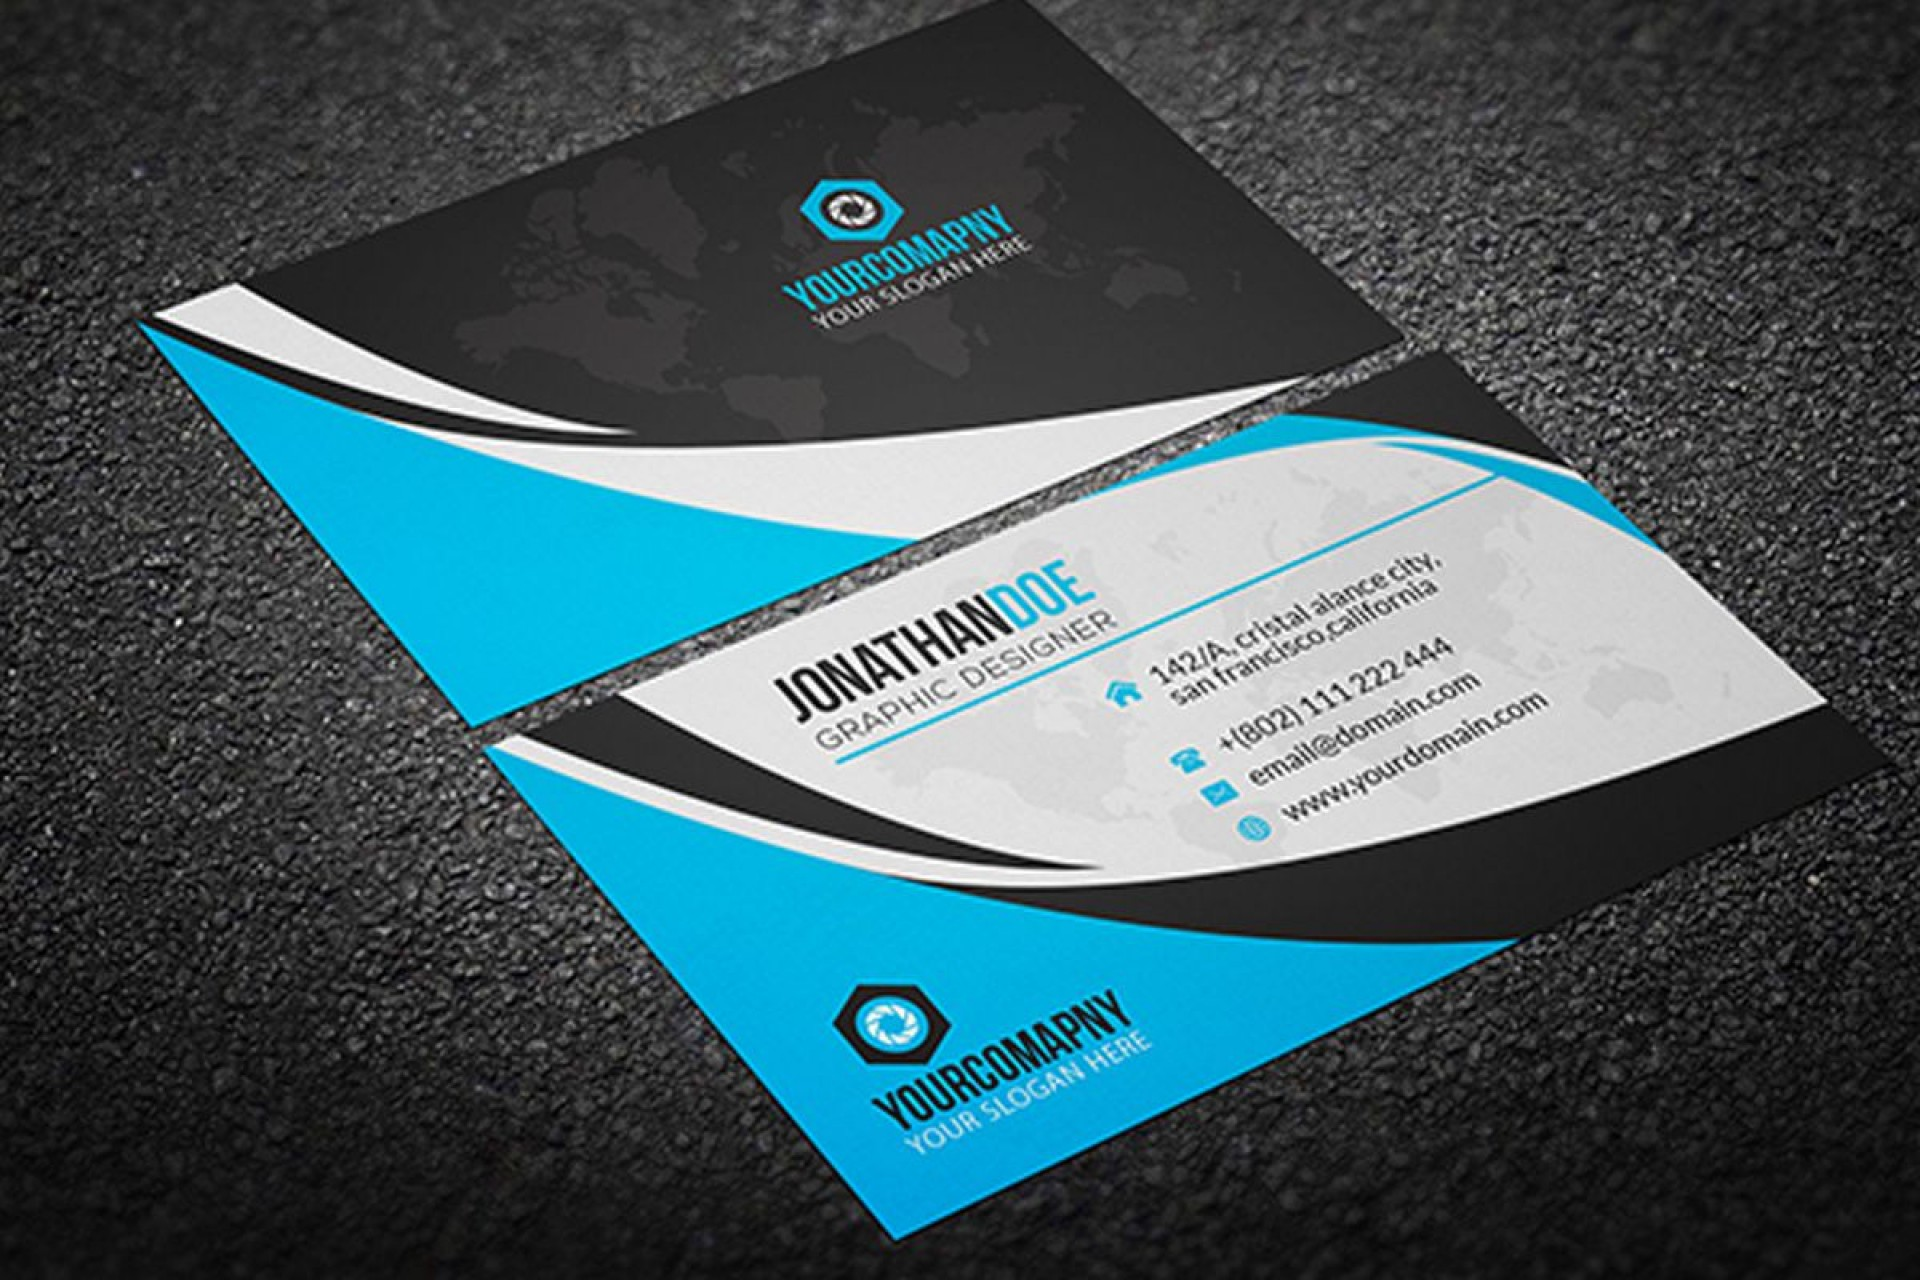 002 Fearsome Psd Busines Card Template Design  Computer Free With Bleed1920